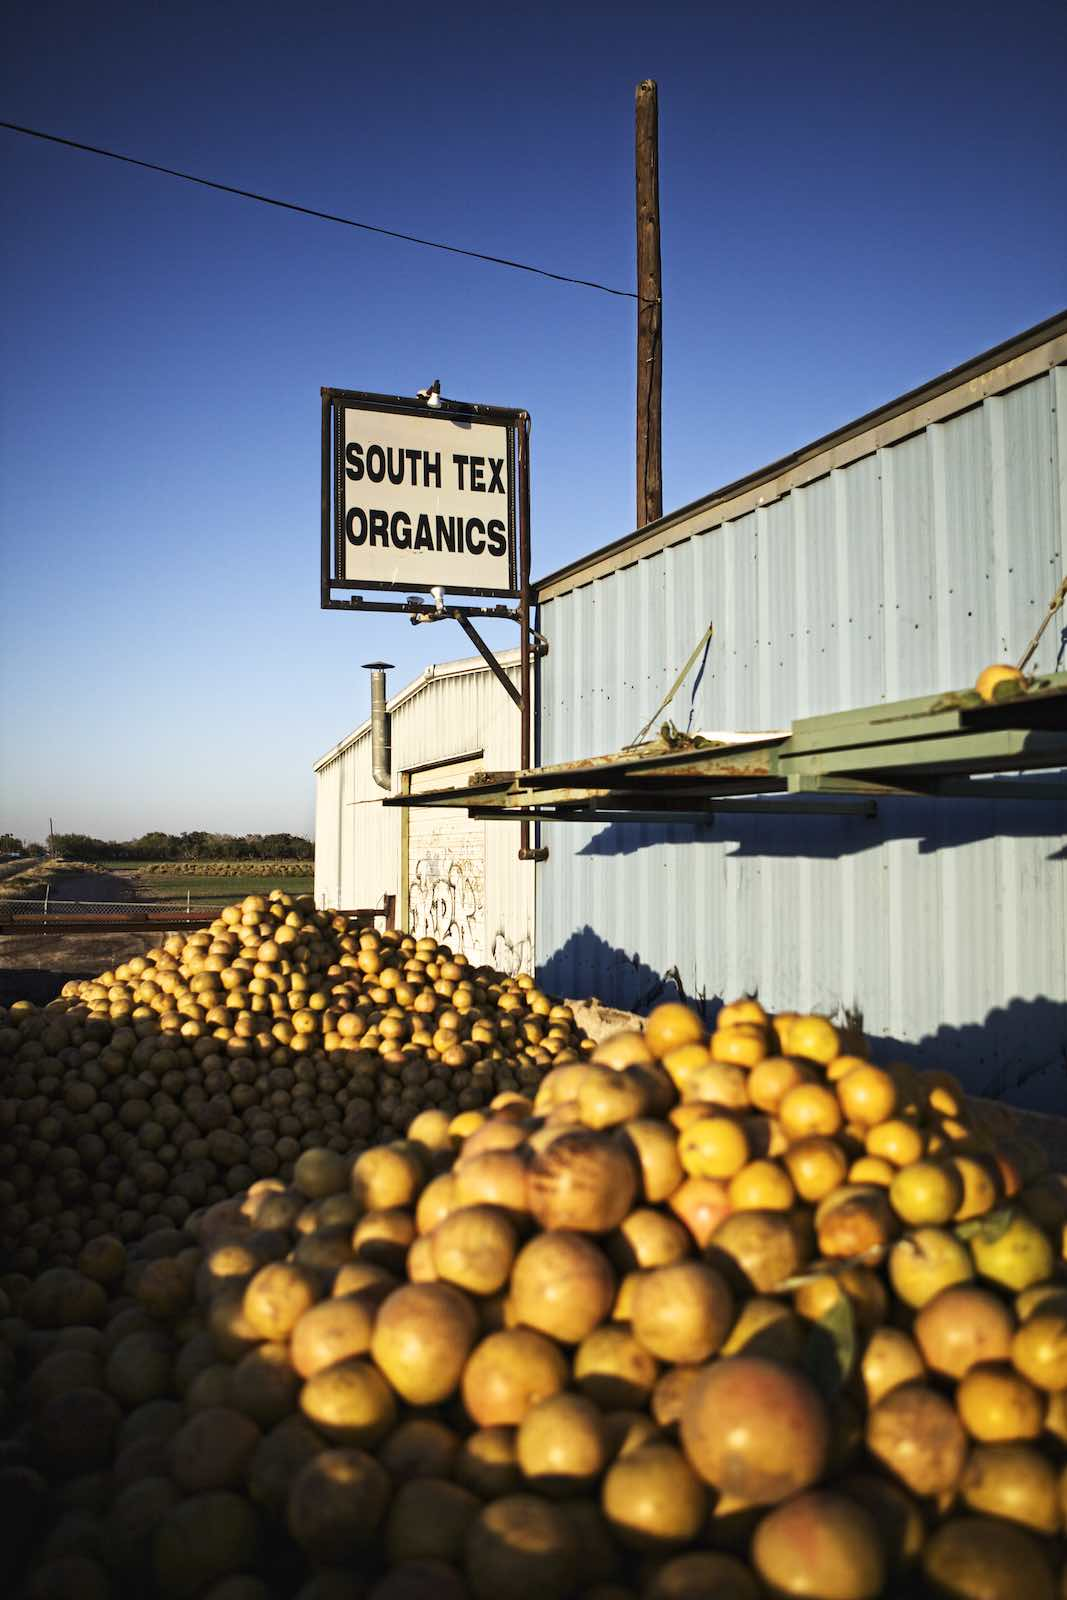 Jody Horton Photography - Grapefruits piled outside a steel building, ready to be harvested.